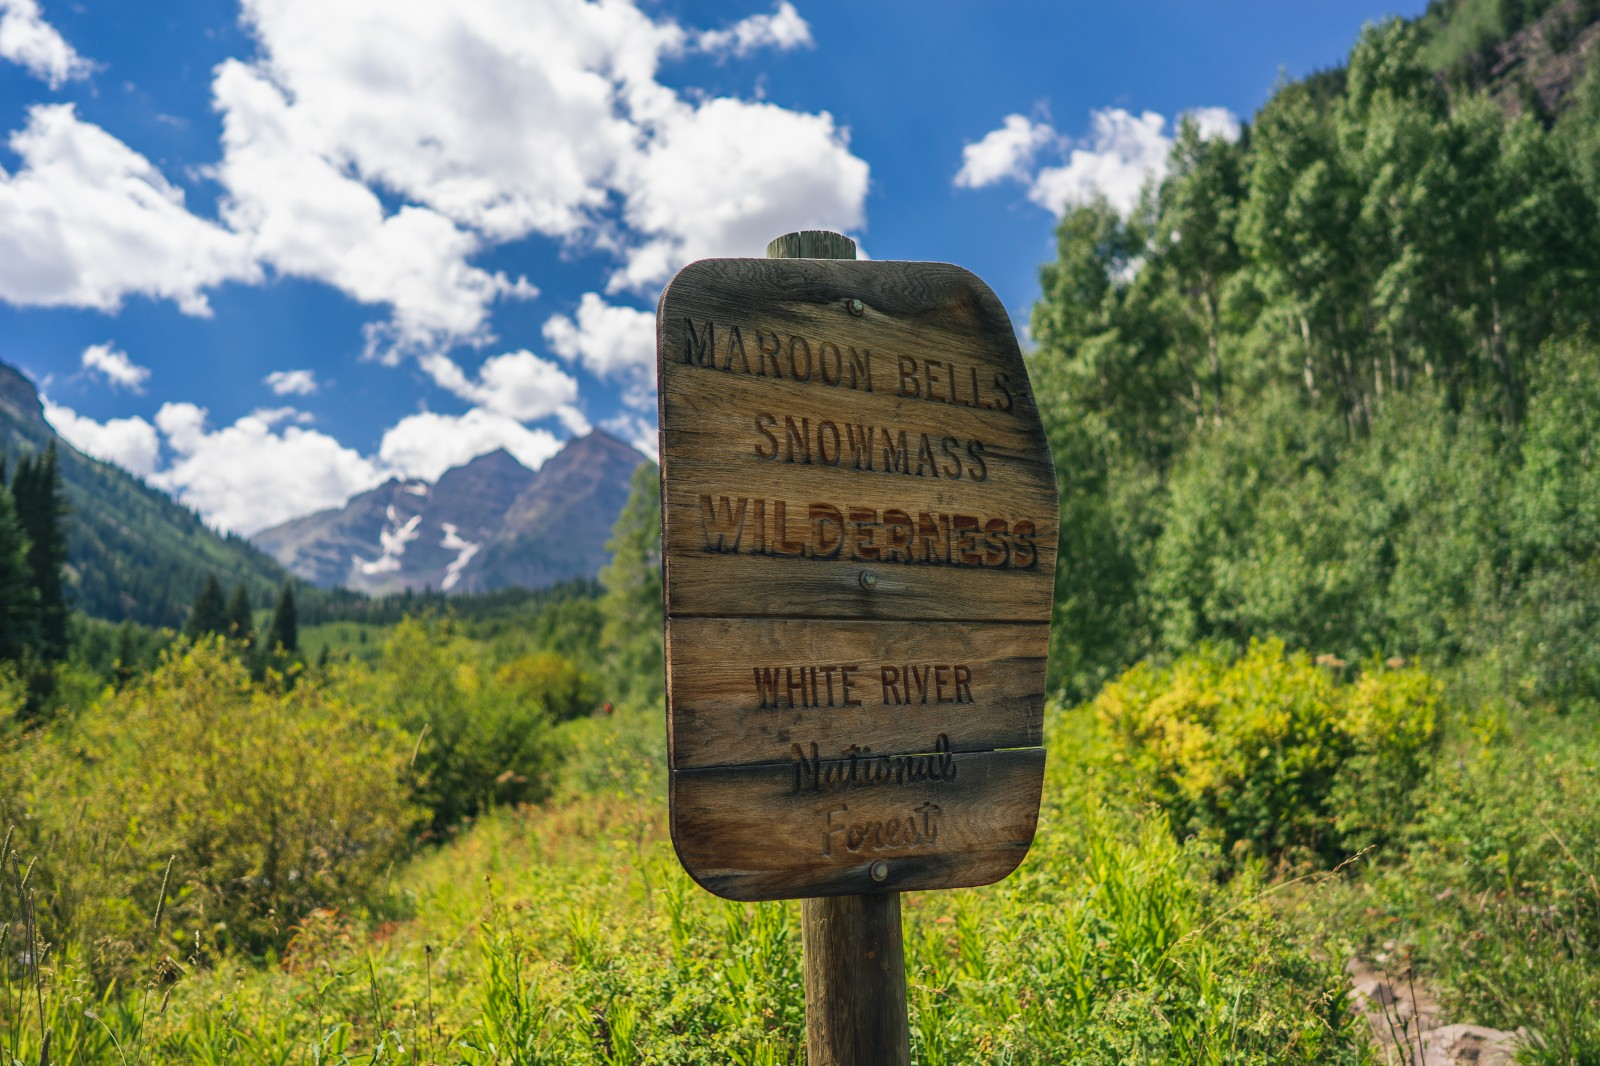 Snowmass Wilderness, White River, National Forest